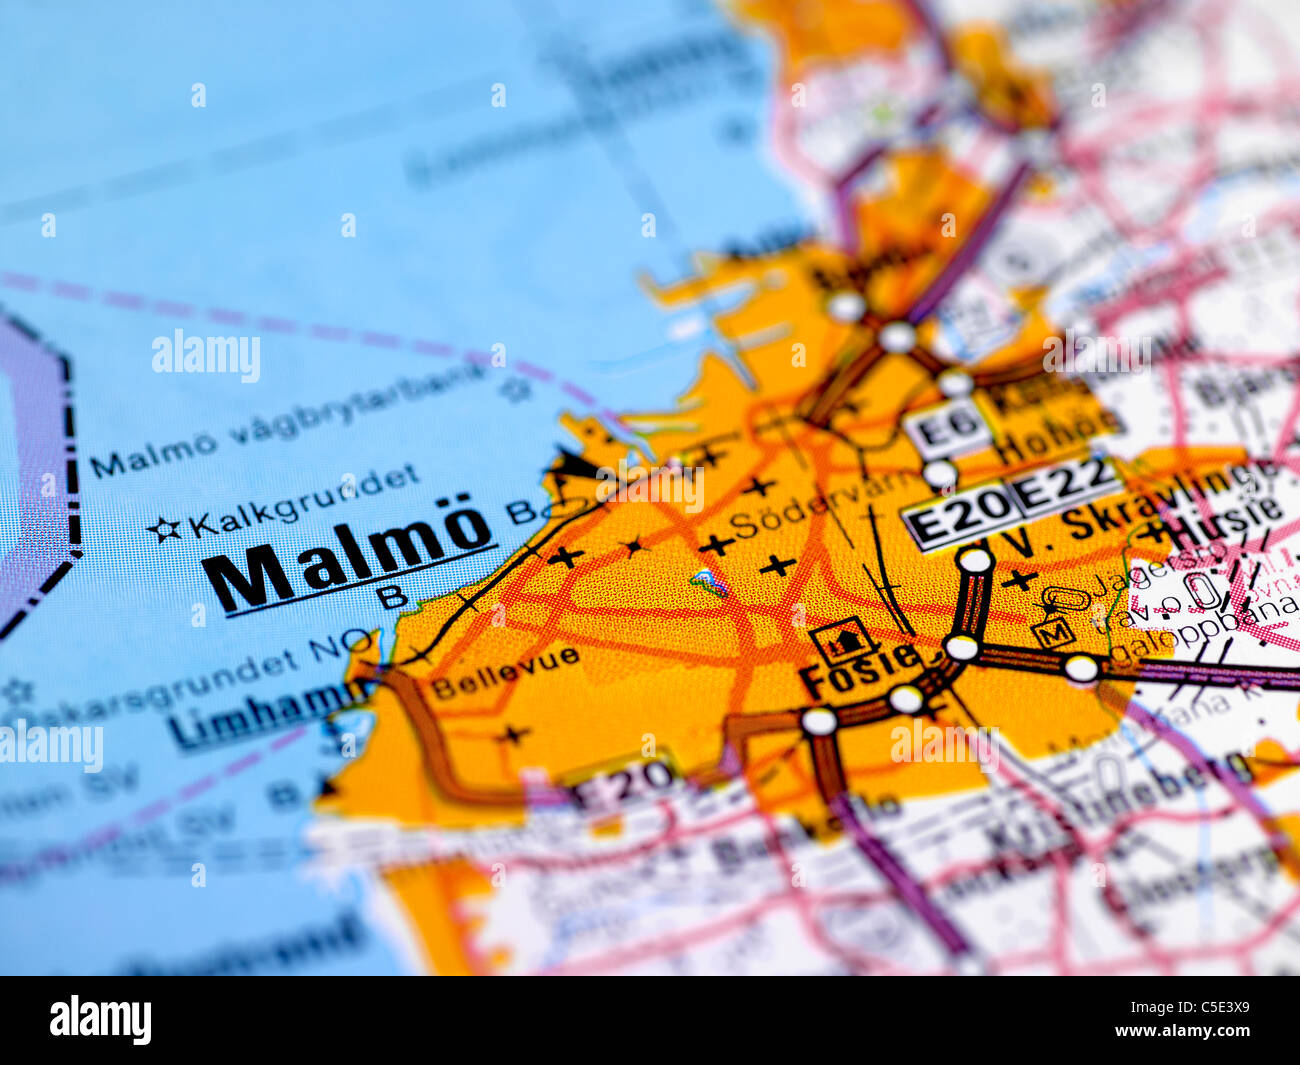 Closeup of a blurred map with focus on Malmo Stock Photo Royalty